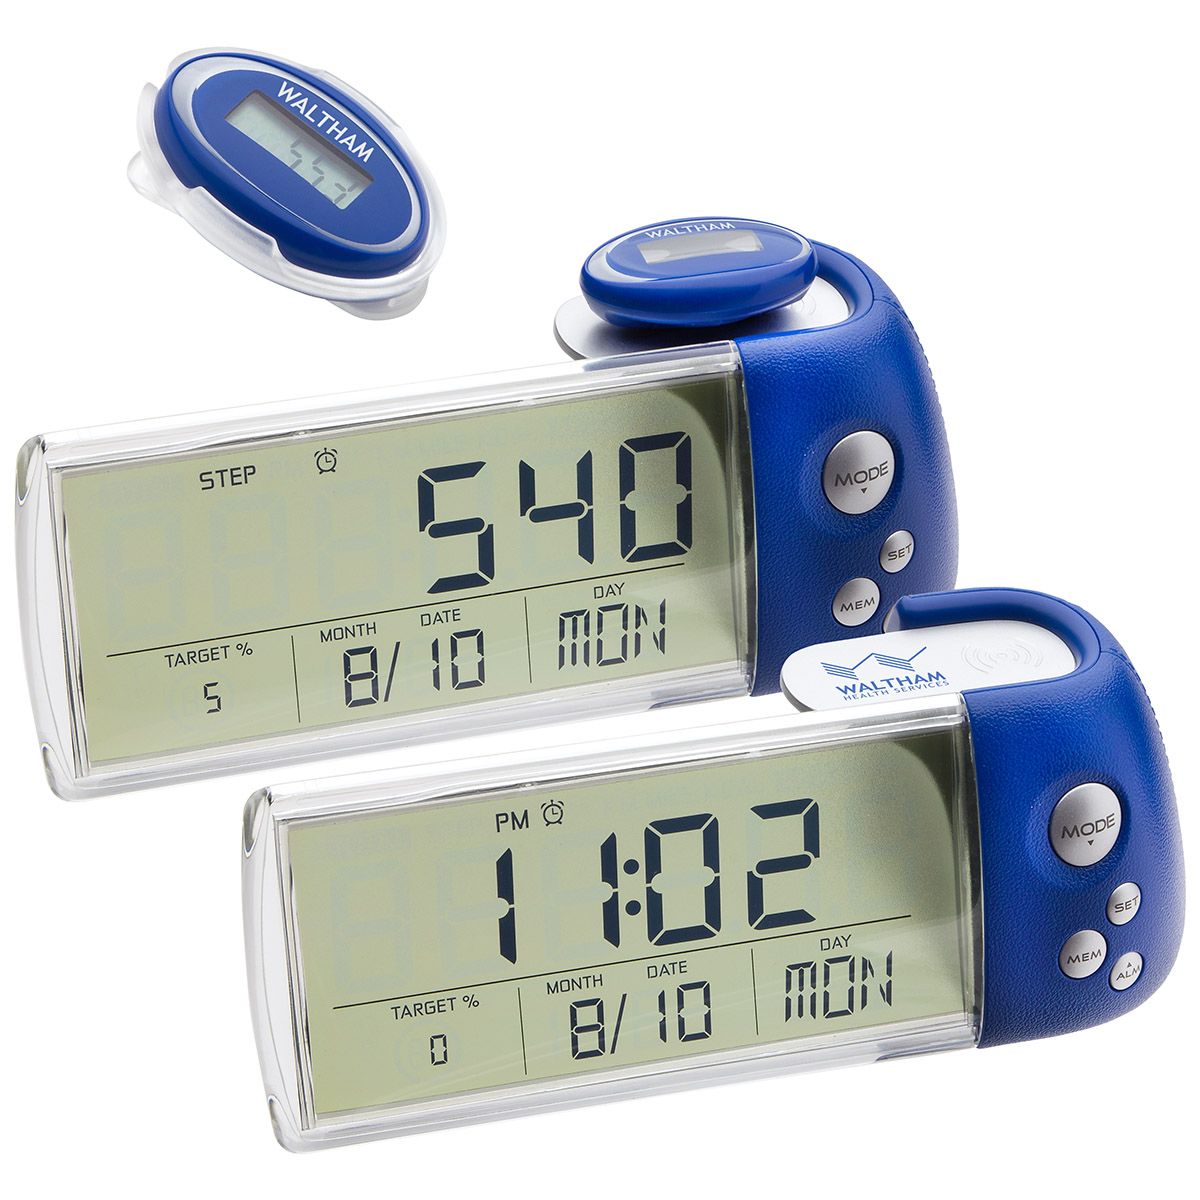 3D Multifunction Pedometer with Docking Station, WHF-PD15, 1 Colour Imprint